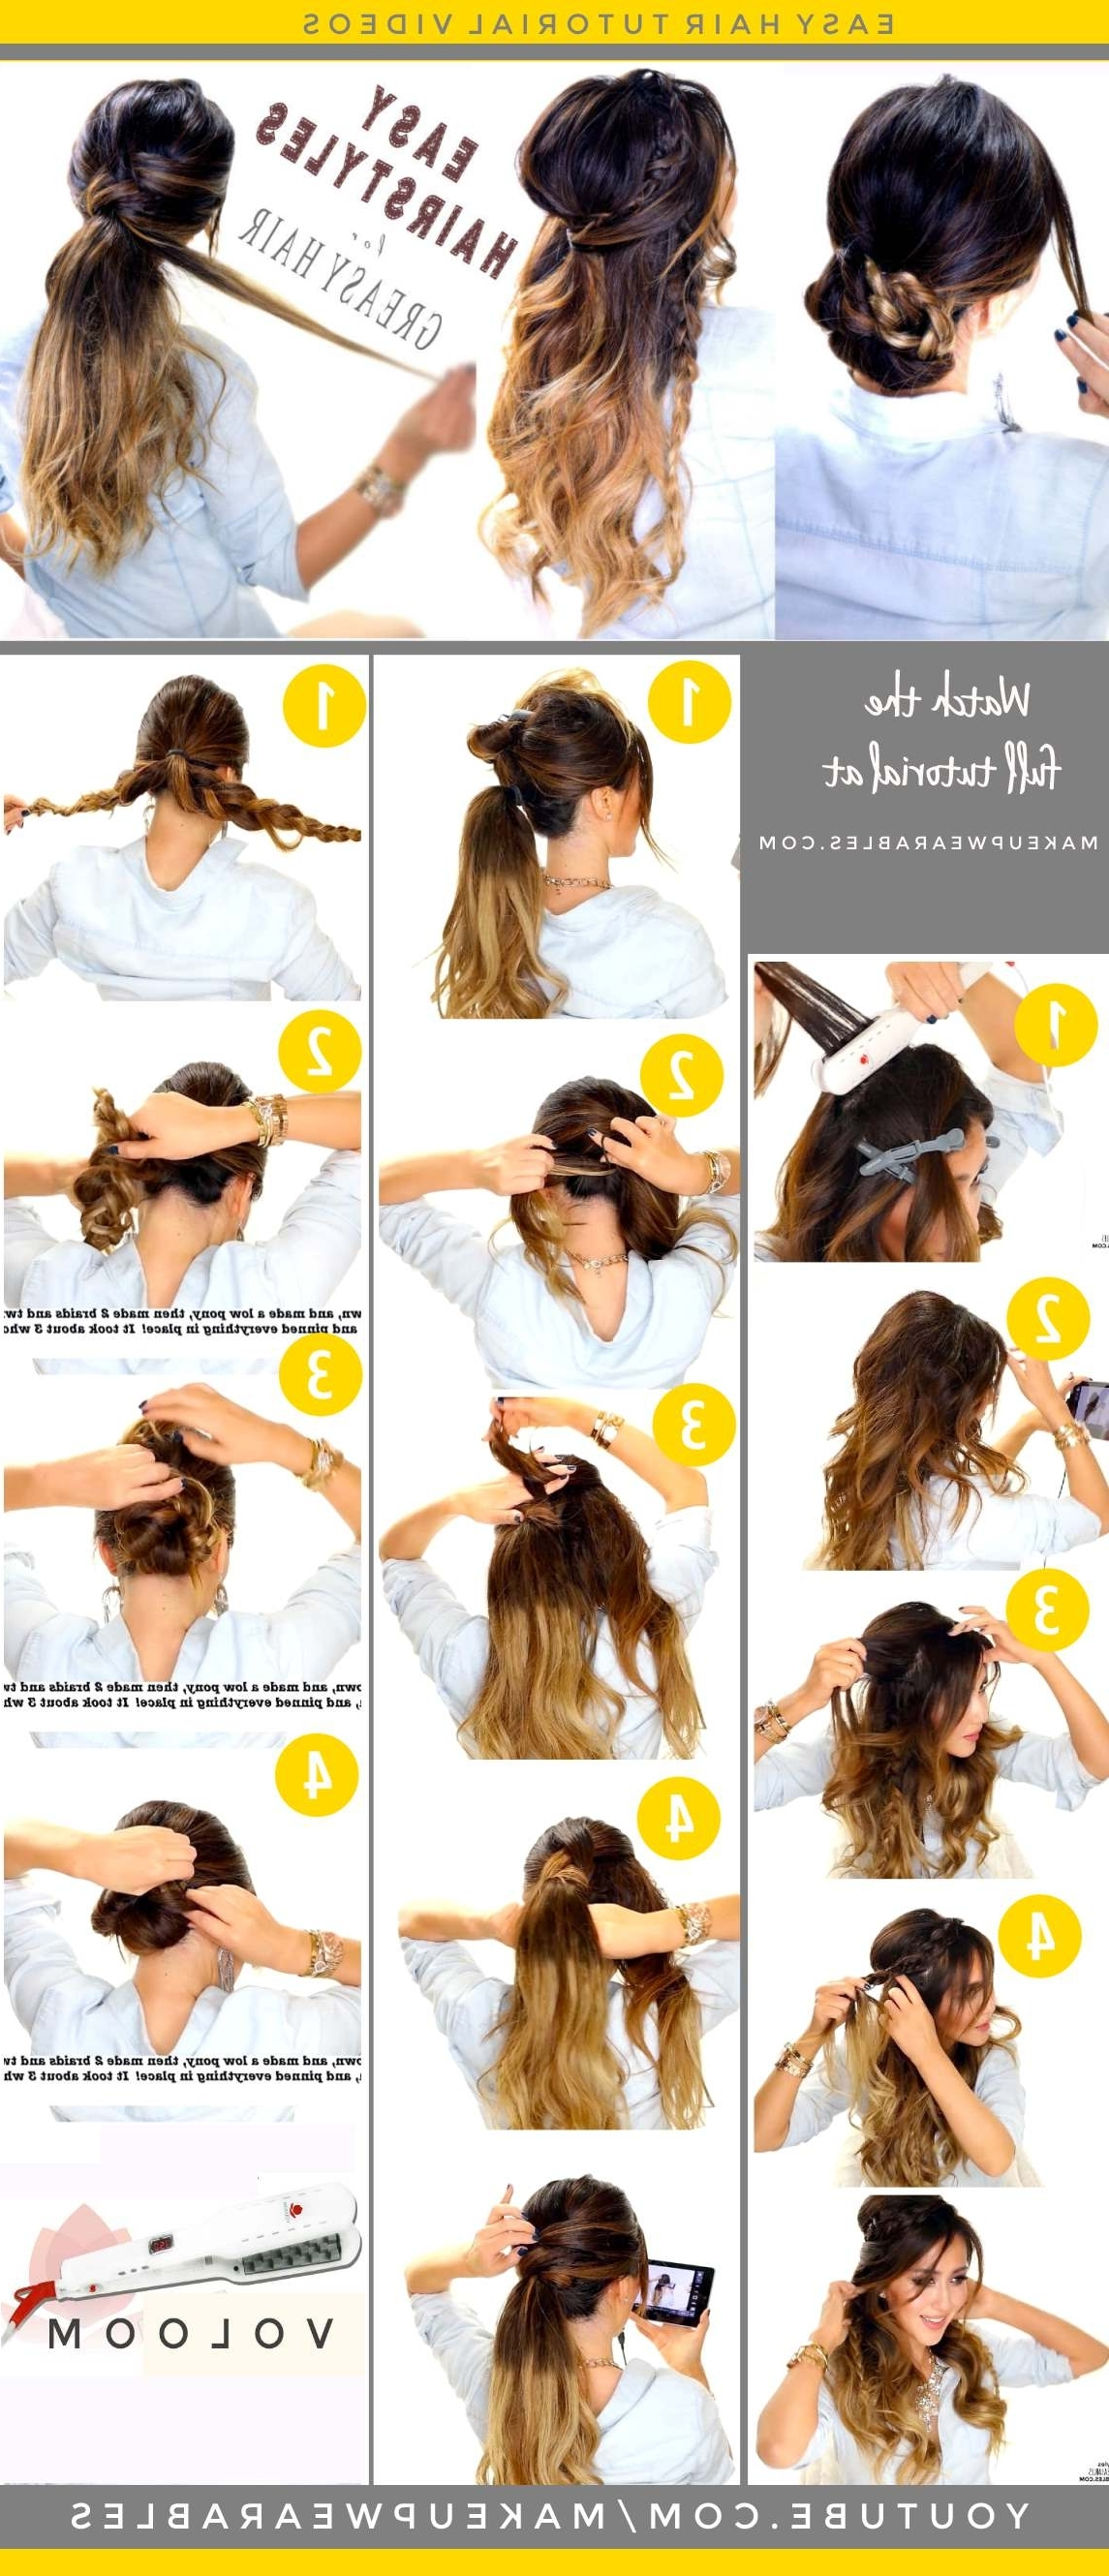 4 Easy Hairstyles For Greasy Hair | Cute Everyday Styles Throughout Long Hair Updo Hairstyles For Work (View 6 of 15)